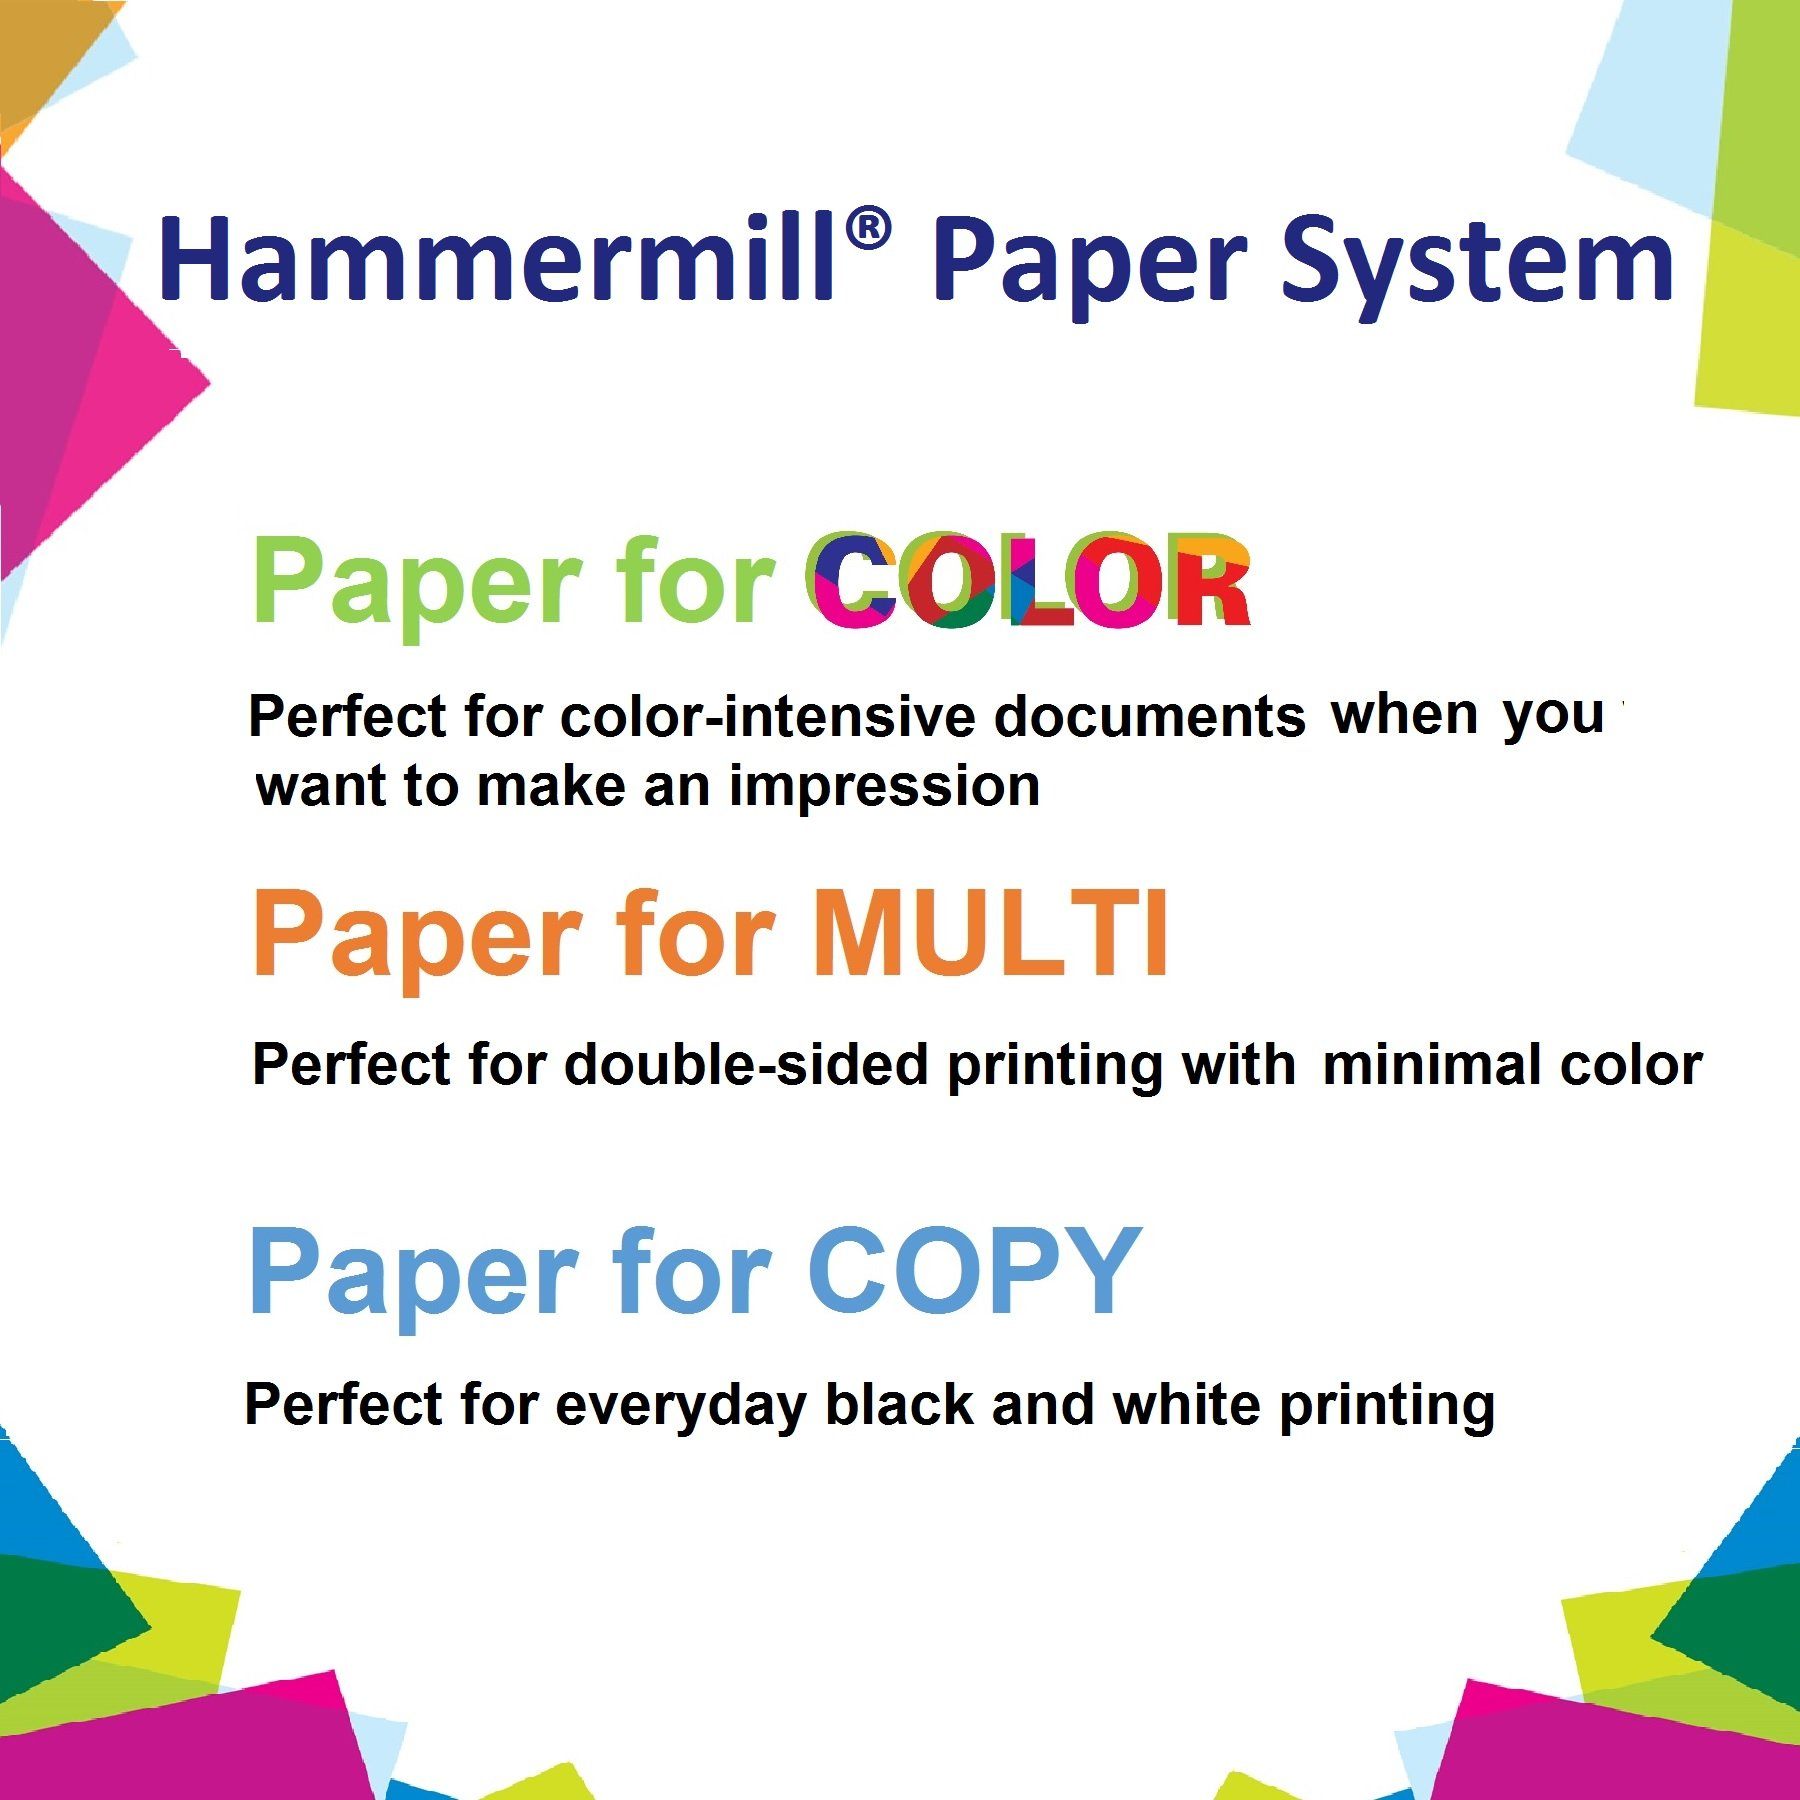 Hammermill Paper, Premium Laser Gloss Paper, 8.5 x 11 Paper, Letter Paper, 32lb Paper, 94 Bright, 1 Pack / 300 Sheets (163110R) Acid Free Paper by Hammermill (Image #5)